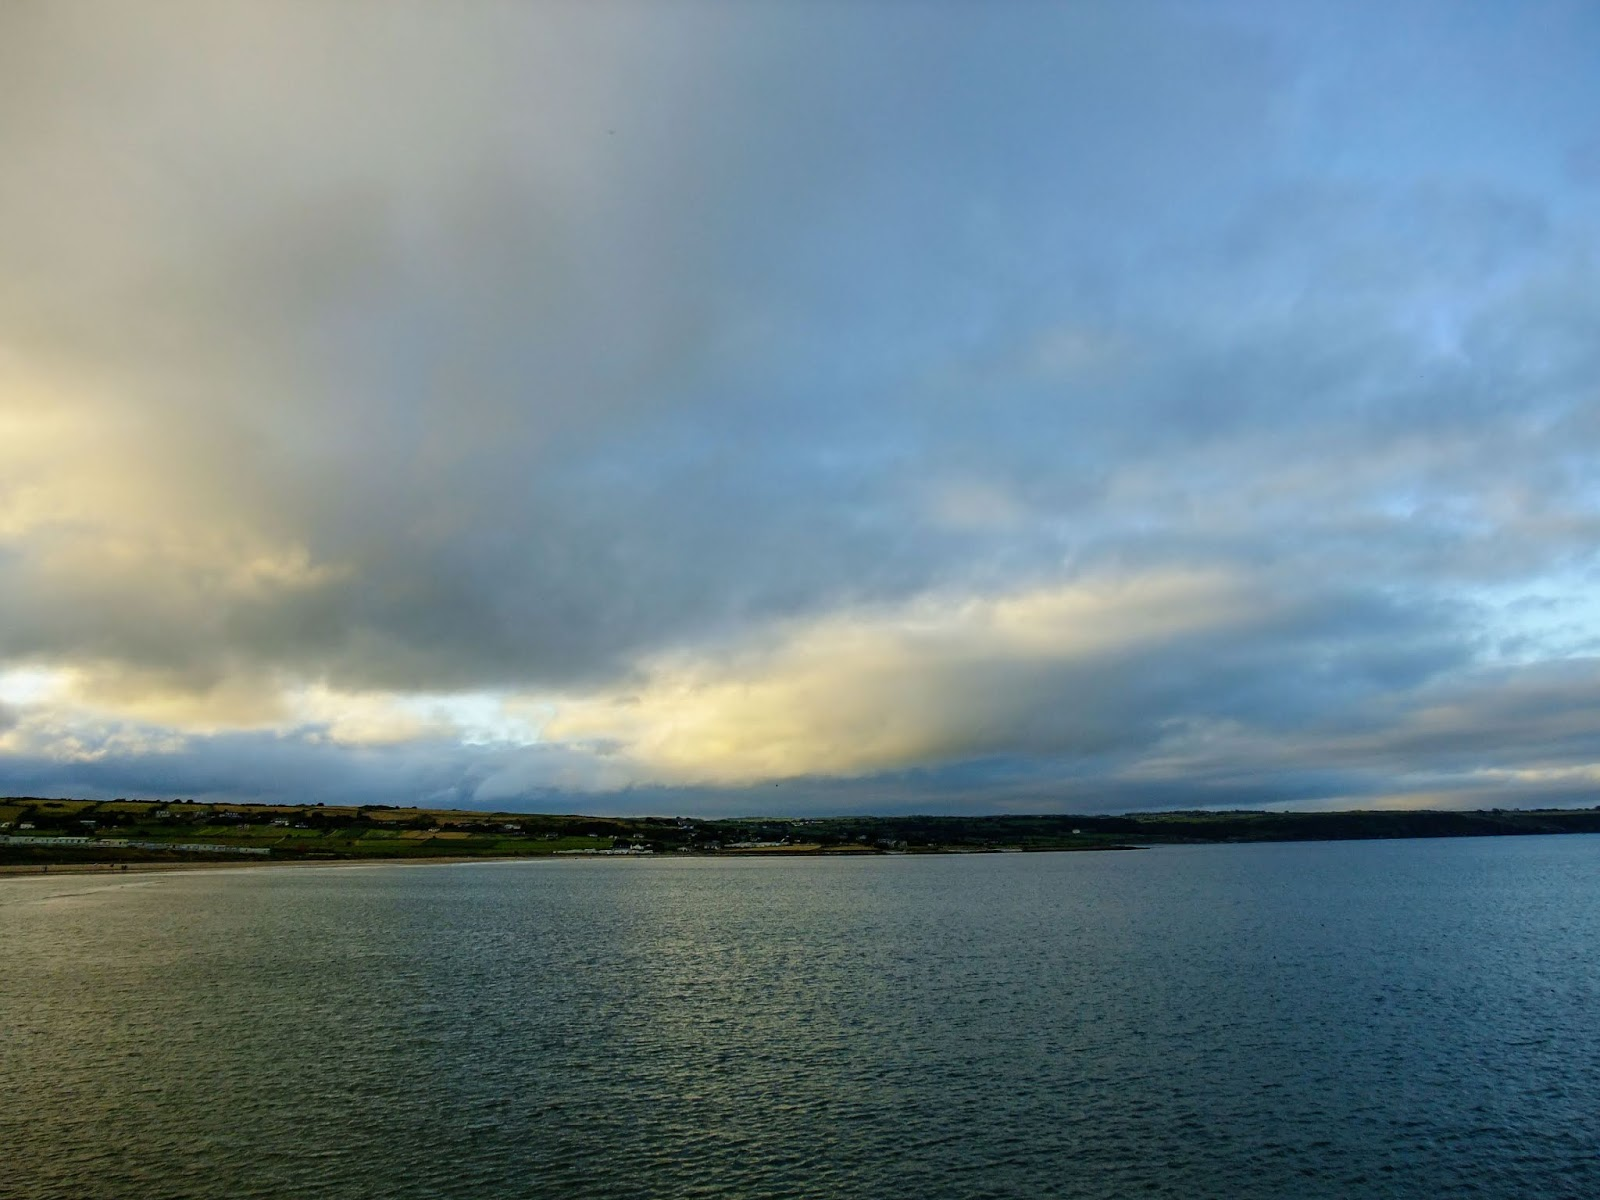 Sunset clouds over water in Ardmore, Co.Cork.